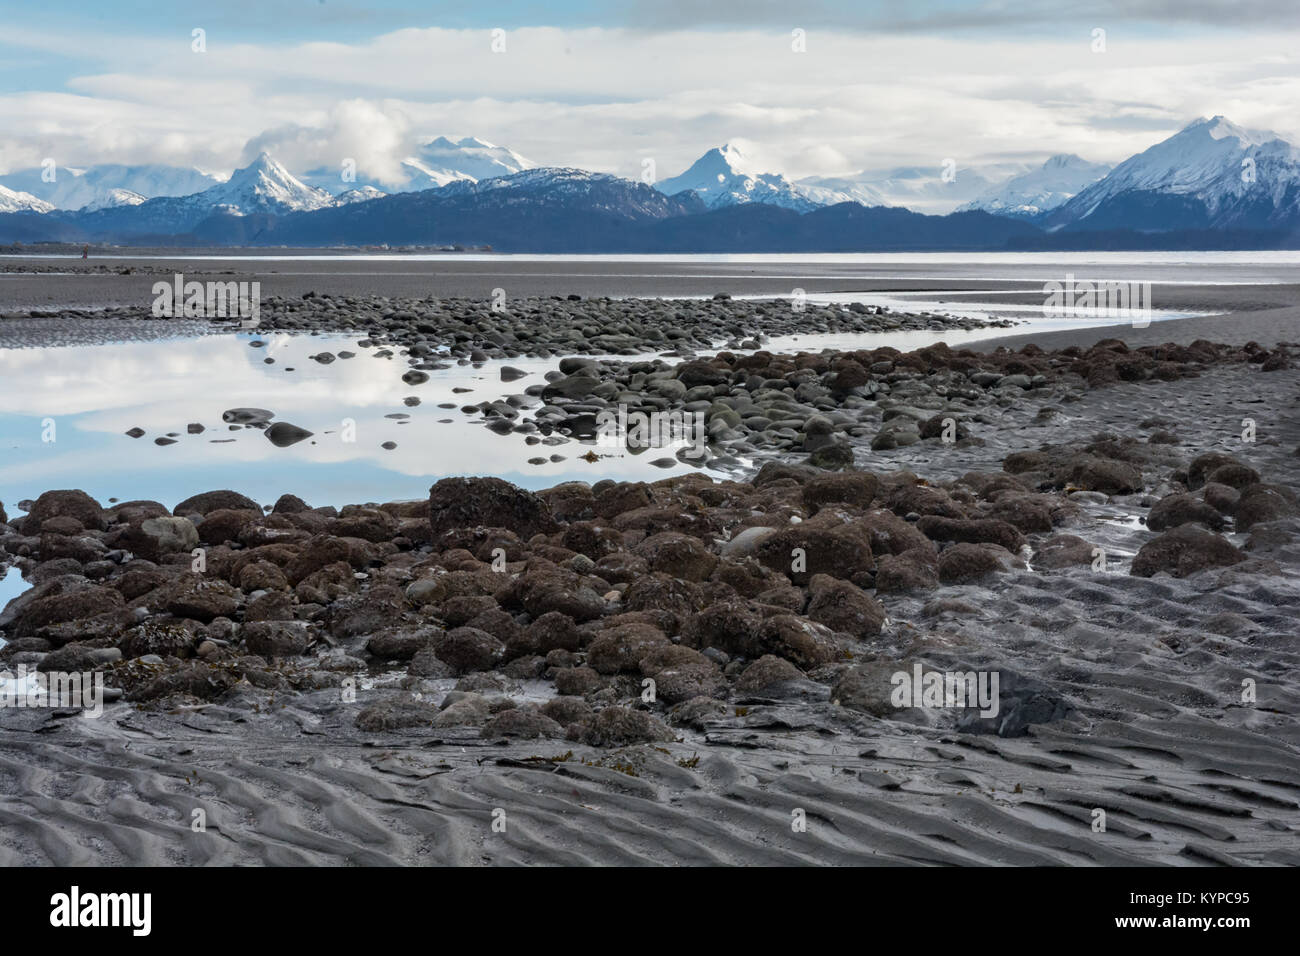 Tidals pools lay exposed at low tide with snow capped mountains in the background. - Stock Image